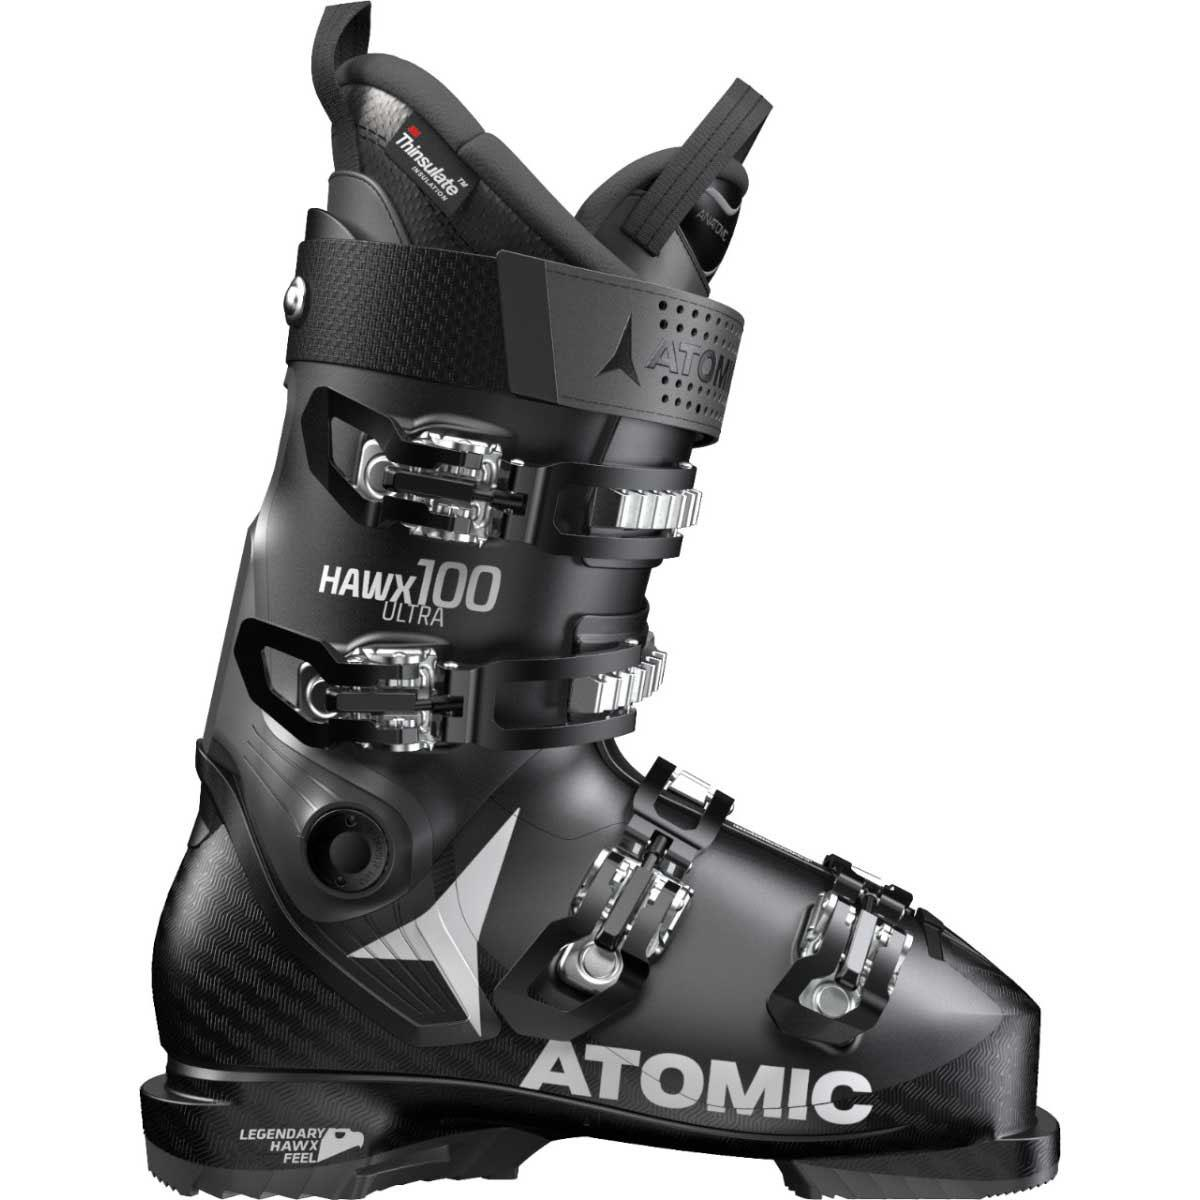 Atomic men's HAWX Ultra 100 Ski boot in black anthracite